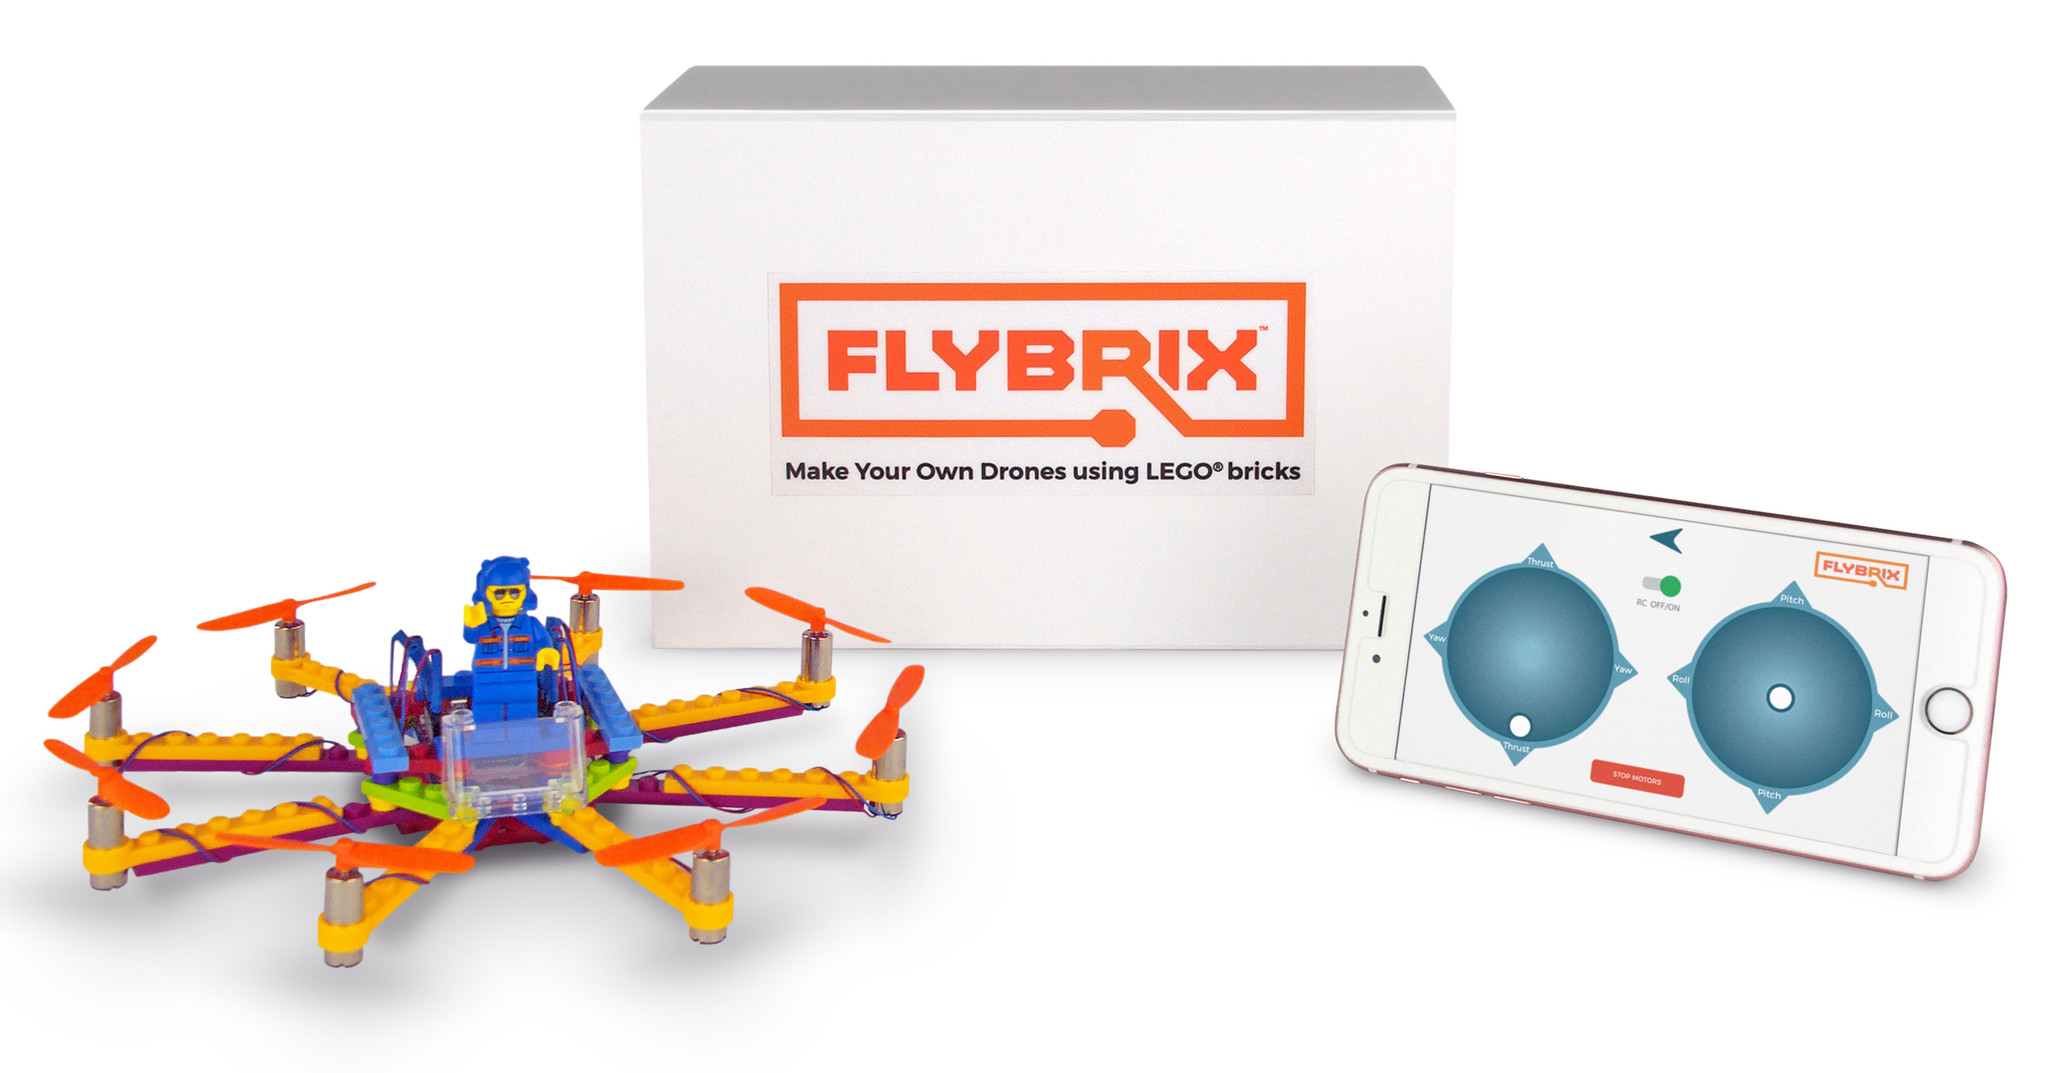 flybrix-lego-drohne-drone-octcopter-quadrocopter-hexacopter-1